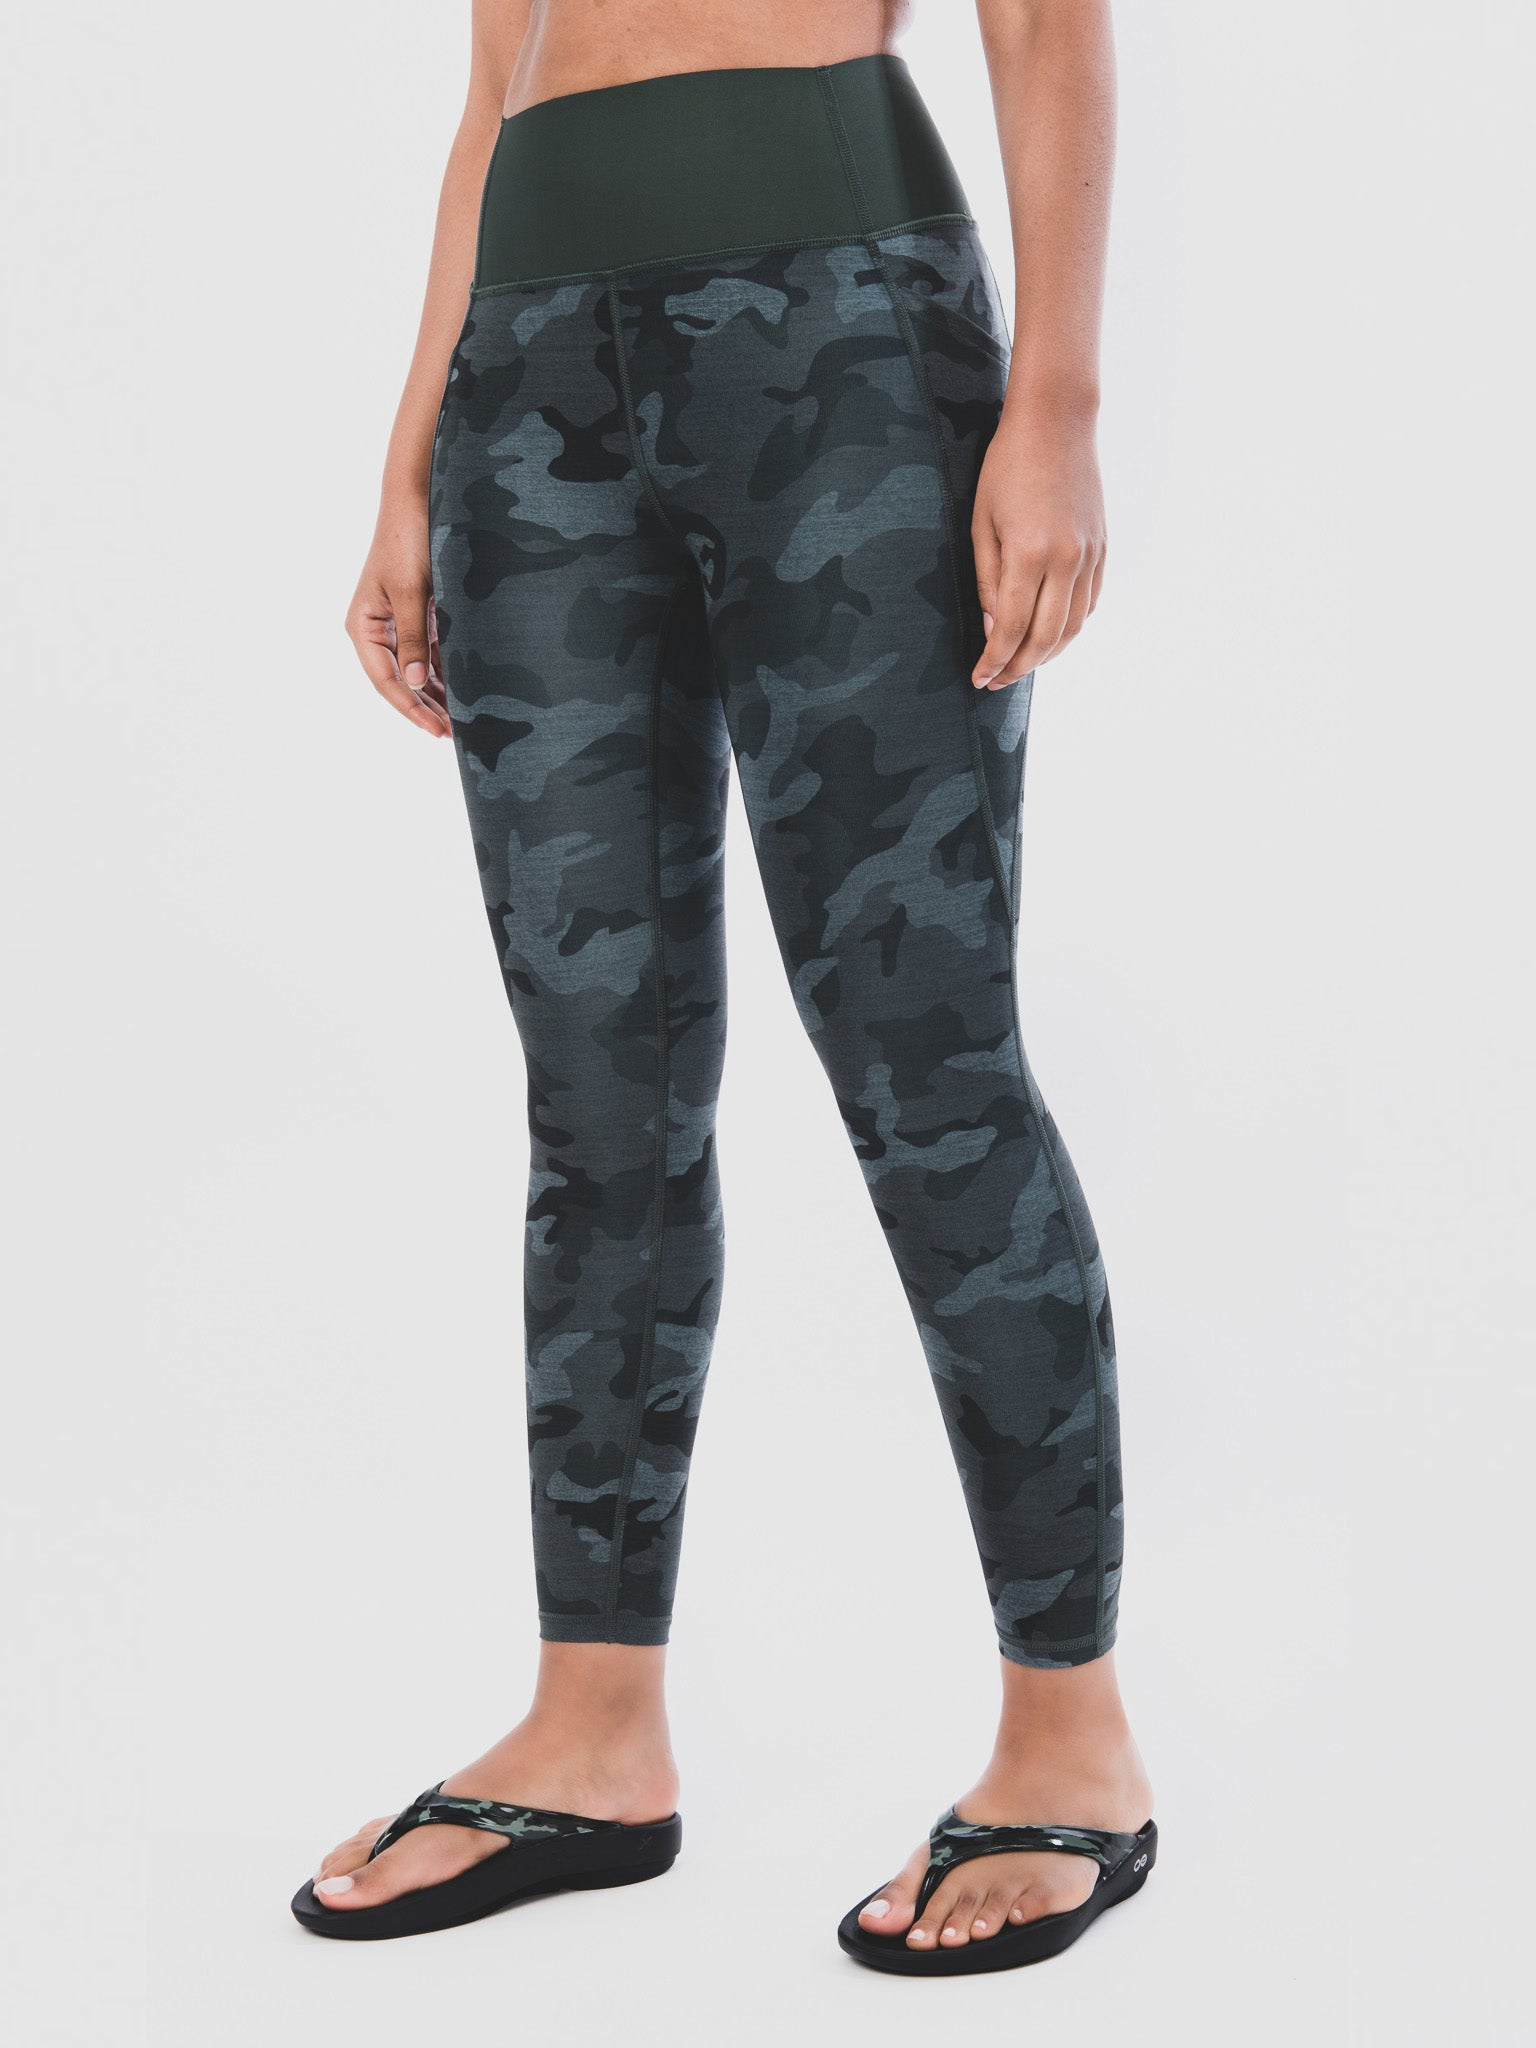 Women's OOlala Camo Green Knee Down